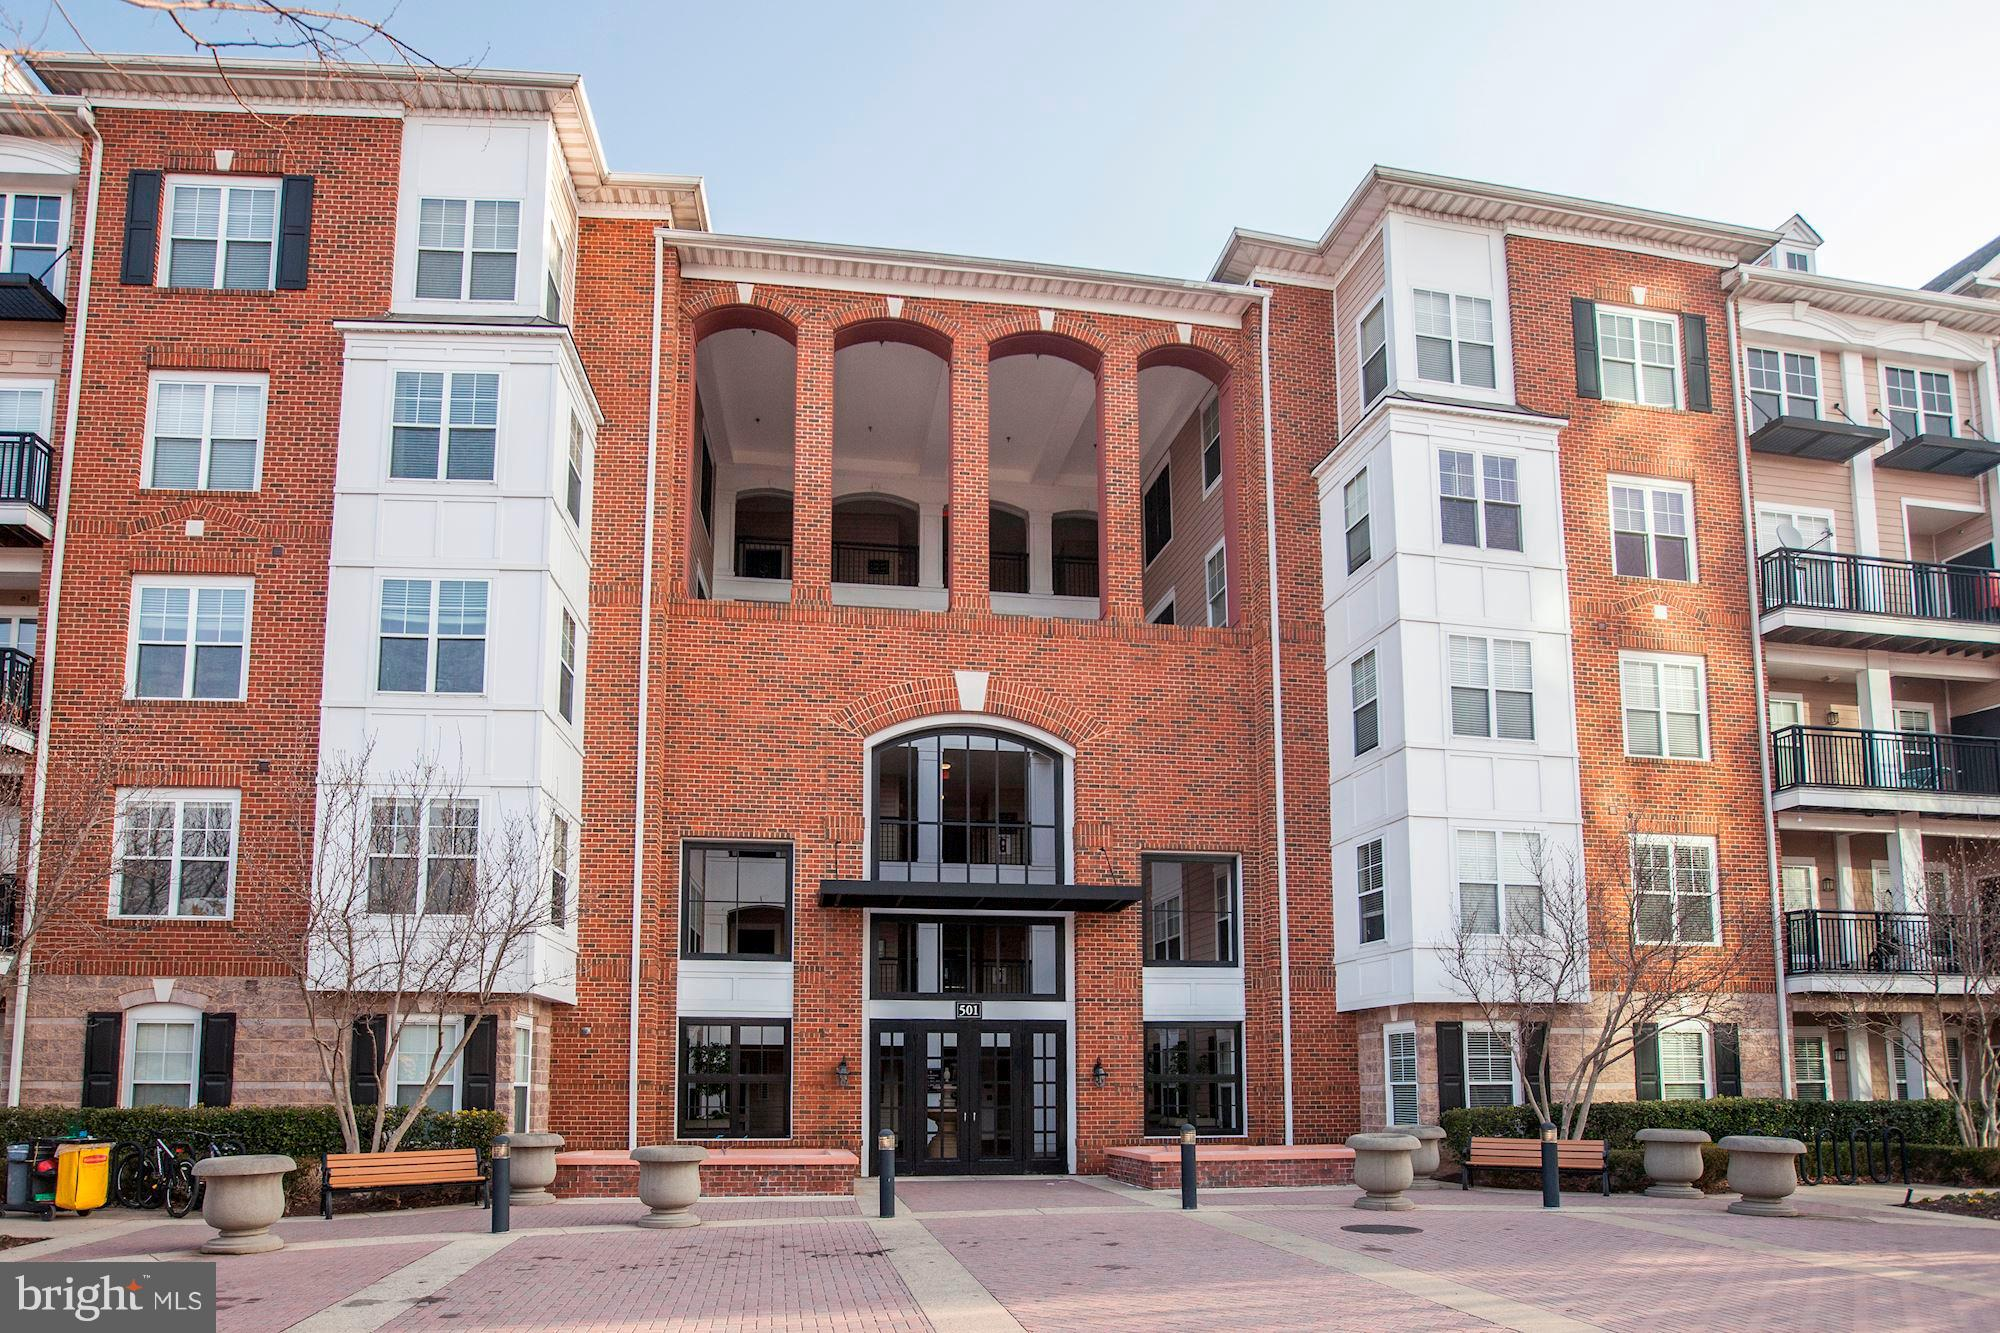 Beautiful 2 Bedroom, 2 Bath condo in walking distance to the Rockville Metro, and all the restaurant